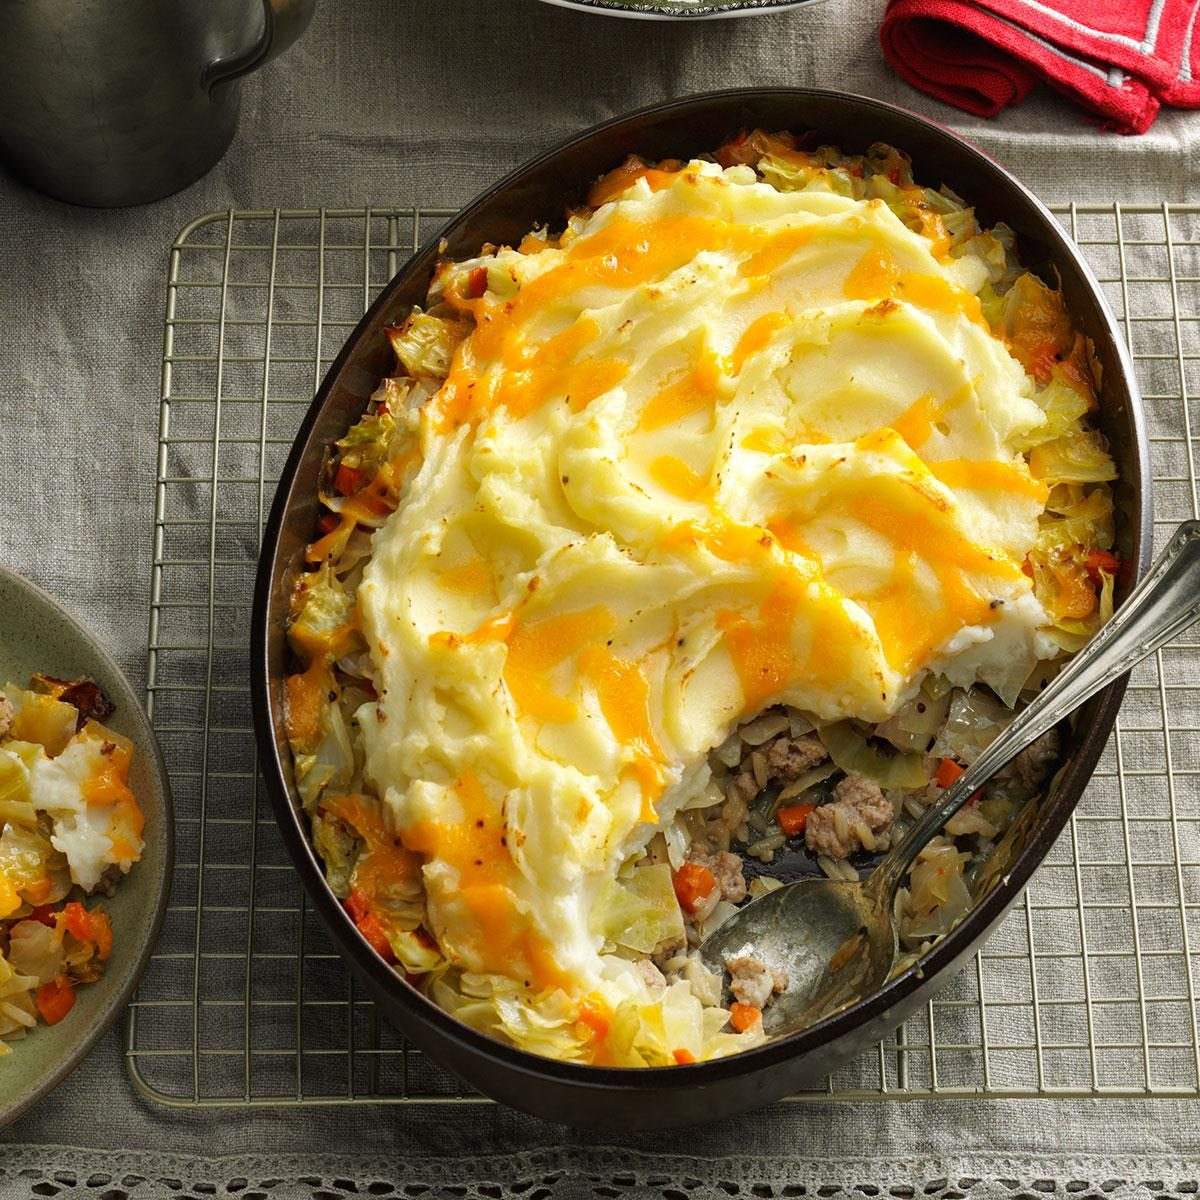 17 Shepherd's Pie Recipes To Celebrate St. Patrick's Day